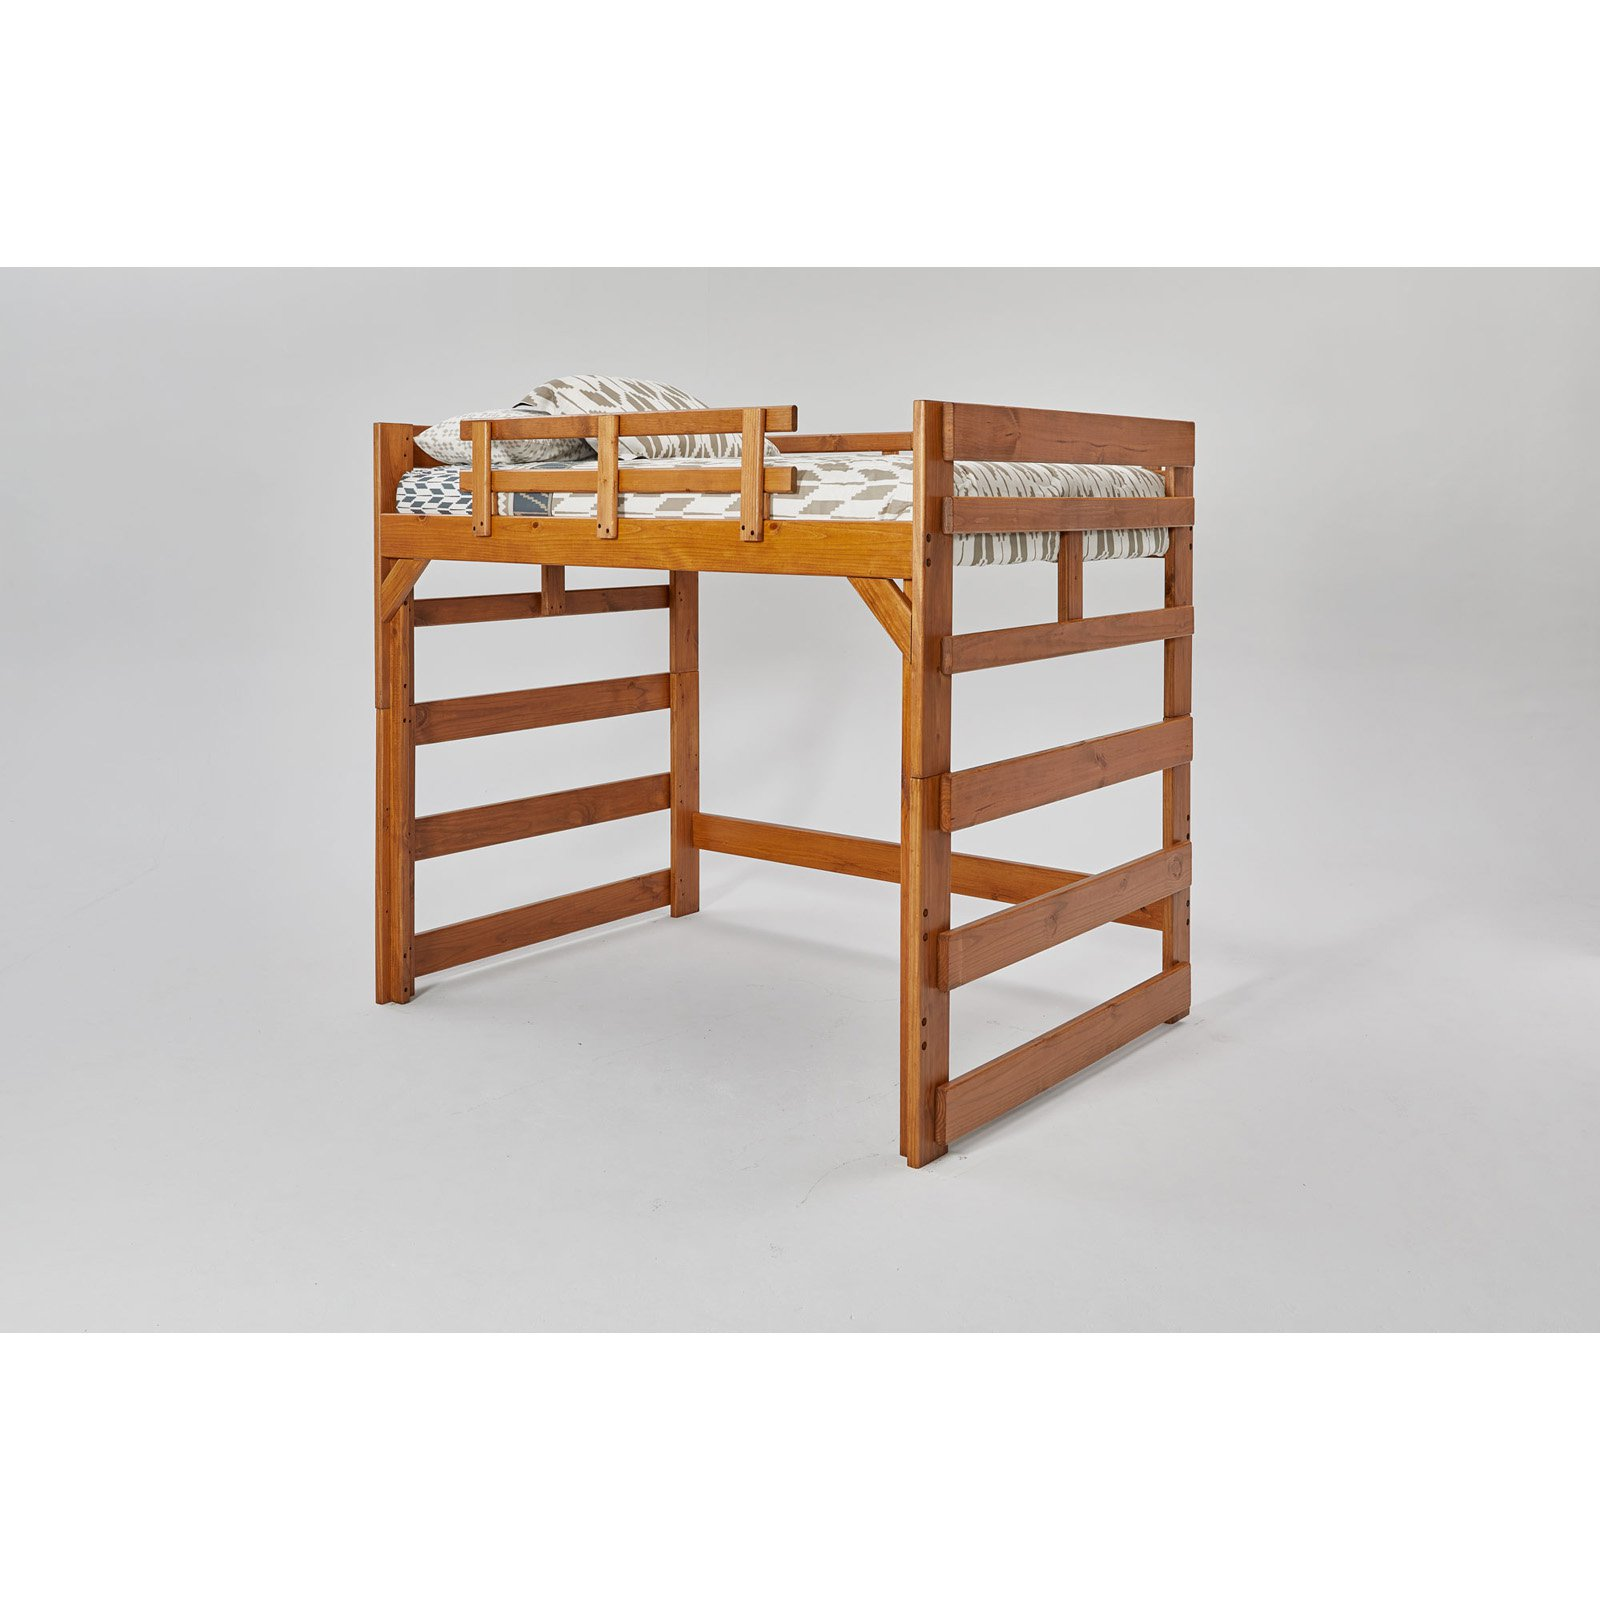 Woodcrest Heartland Loft Bed - Brown